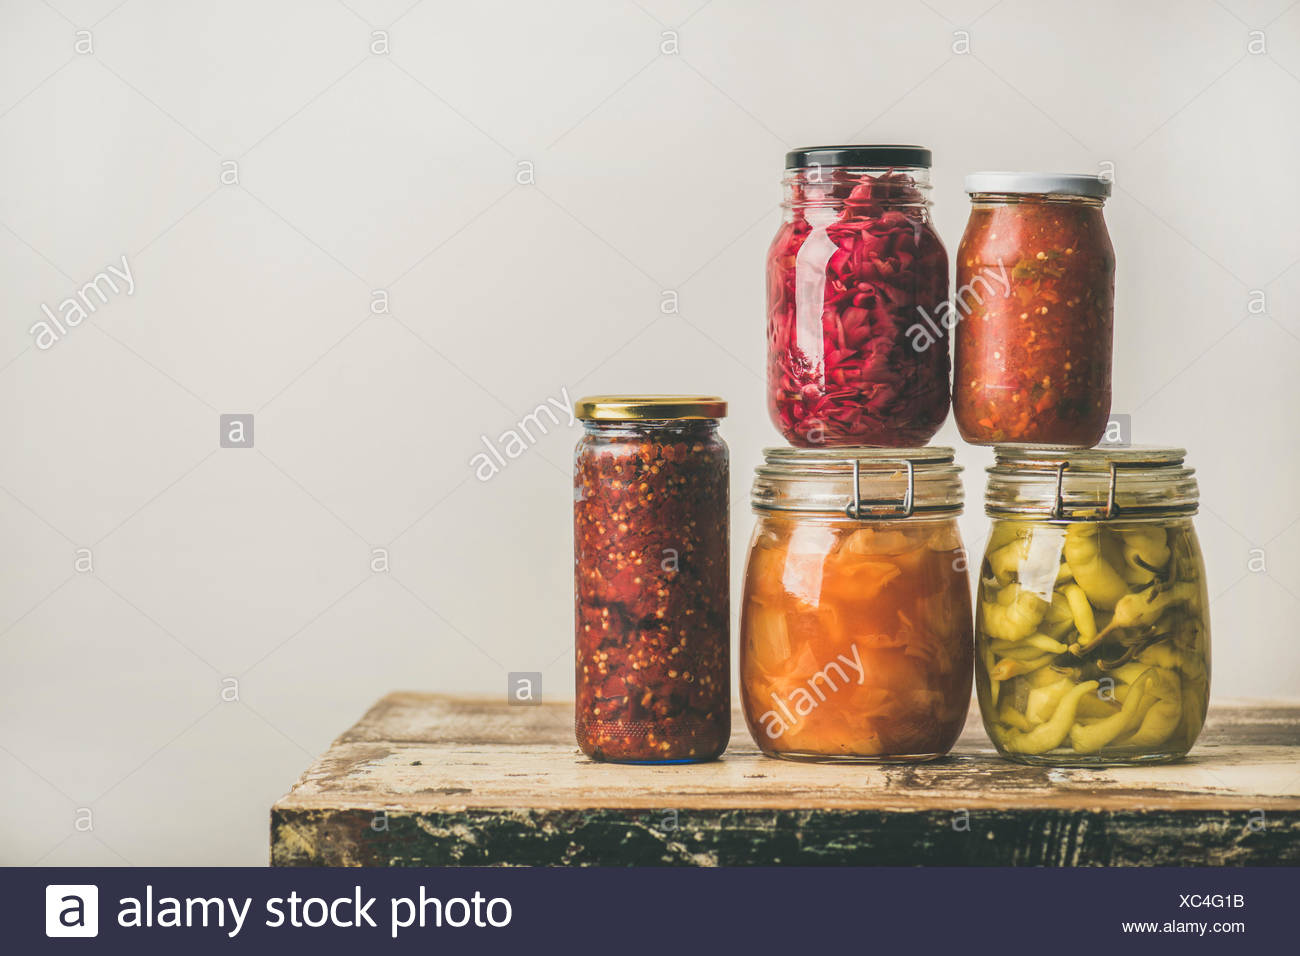 Autumn Seasonal Pickled Or Fermented Colorful Vegetables In Glass Jars  Placed In Stack Over Vintage Kitchen Drawer, White Wall Background, Copy  Space.